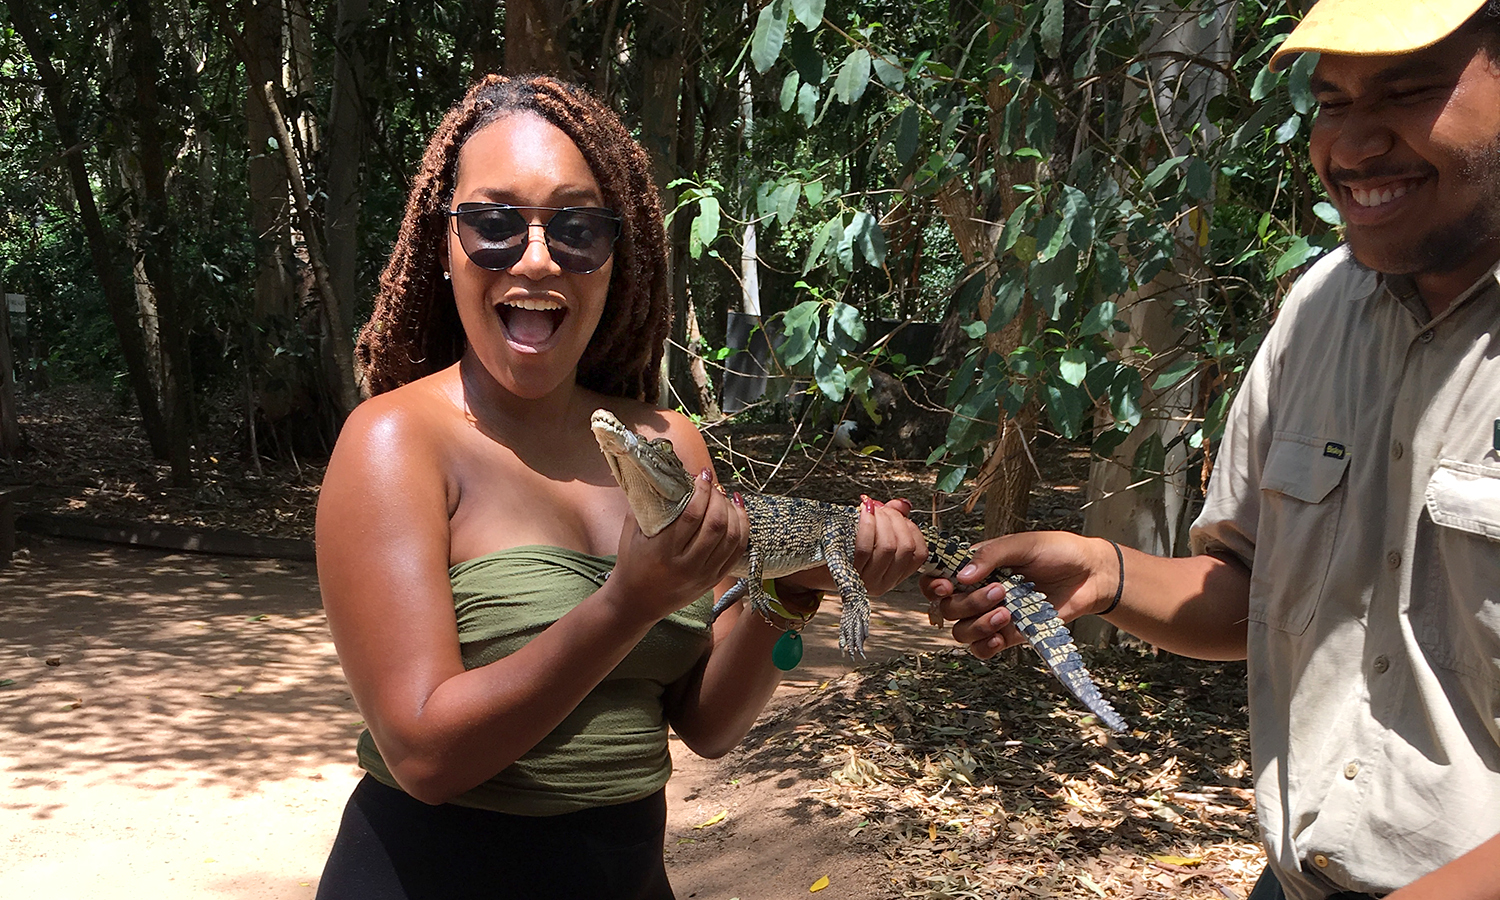 Shaahida Samuel '19 holds a baby alligator in Townsville-Cairns, Australia. Shaahida is studying abroad at James Cook University in Northern Queensland through the HWS Center for Global Education.